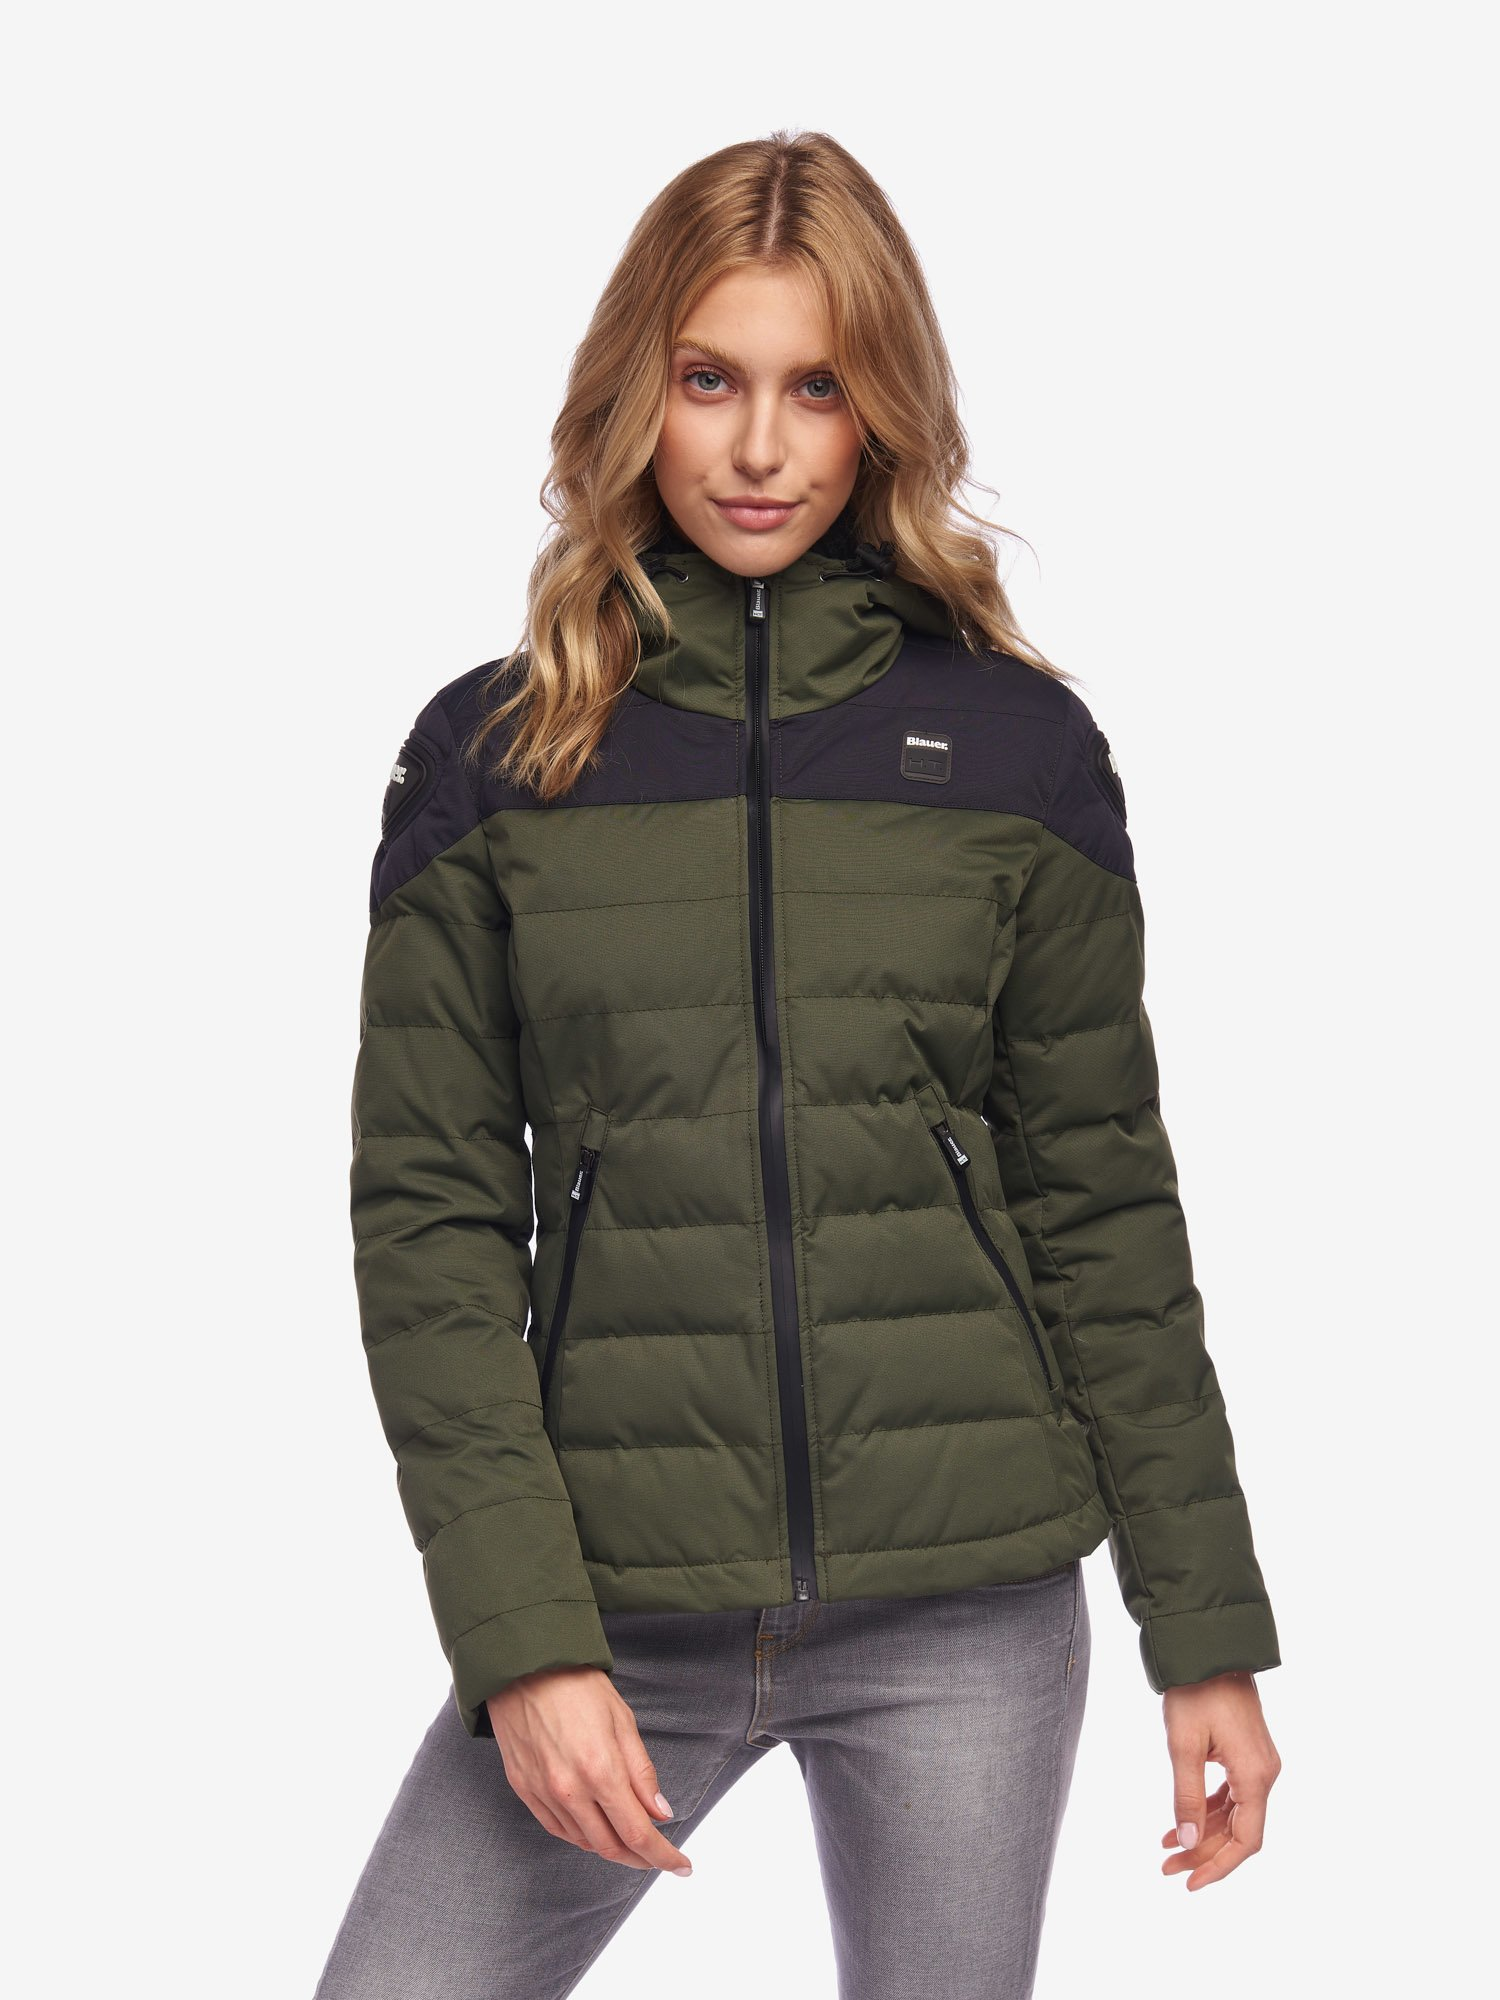 EASY WINTER WOMAN 2.0 - Blauer